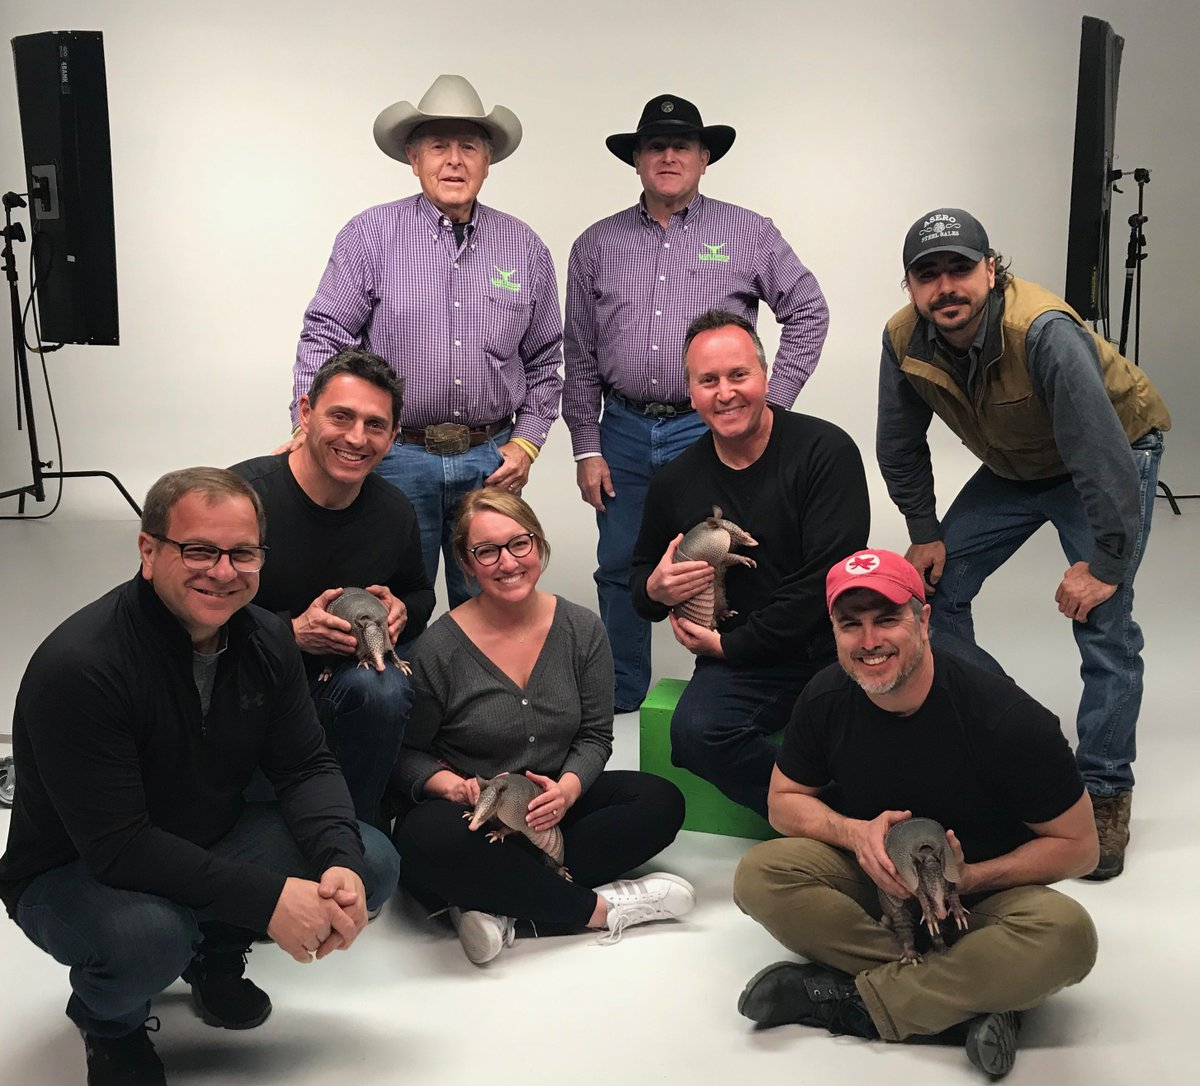 """These armadillos are armadorable!  Shooting in Texas for a new """"Skins"""" campaign for @calacademy. #CaliforniaAcademyOfSciences pic.twitter.com/gm0tgS5F2c"""